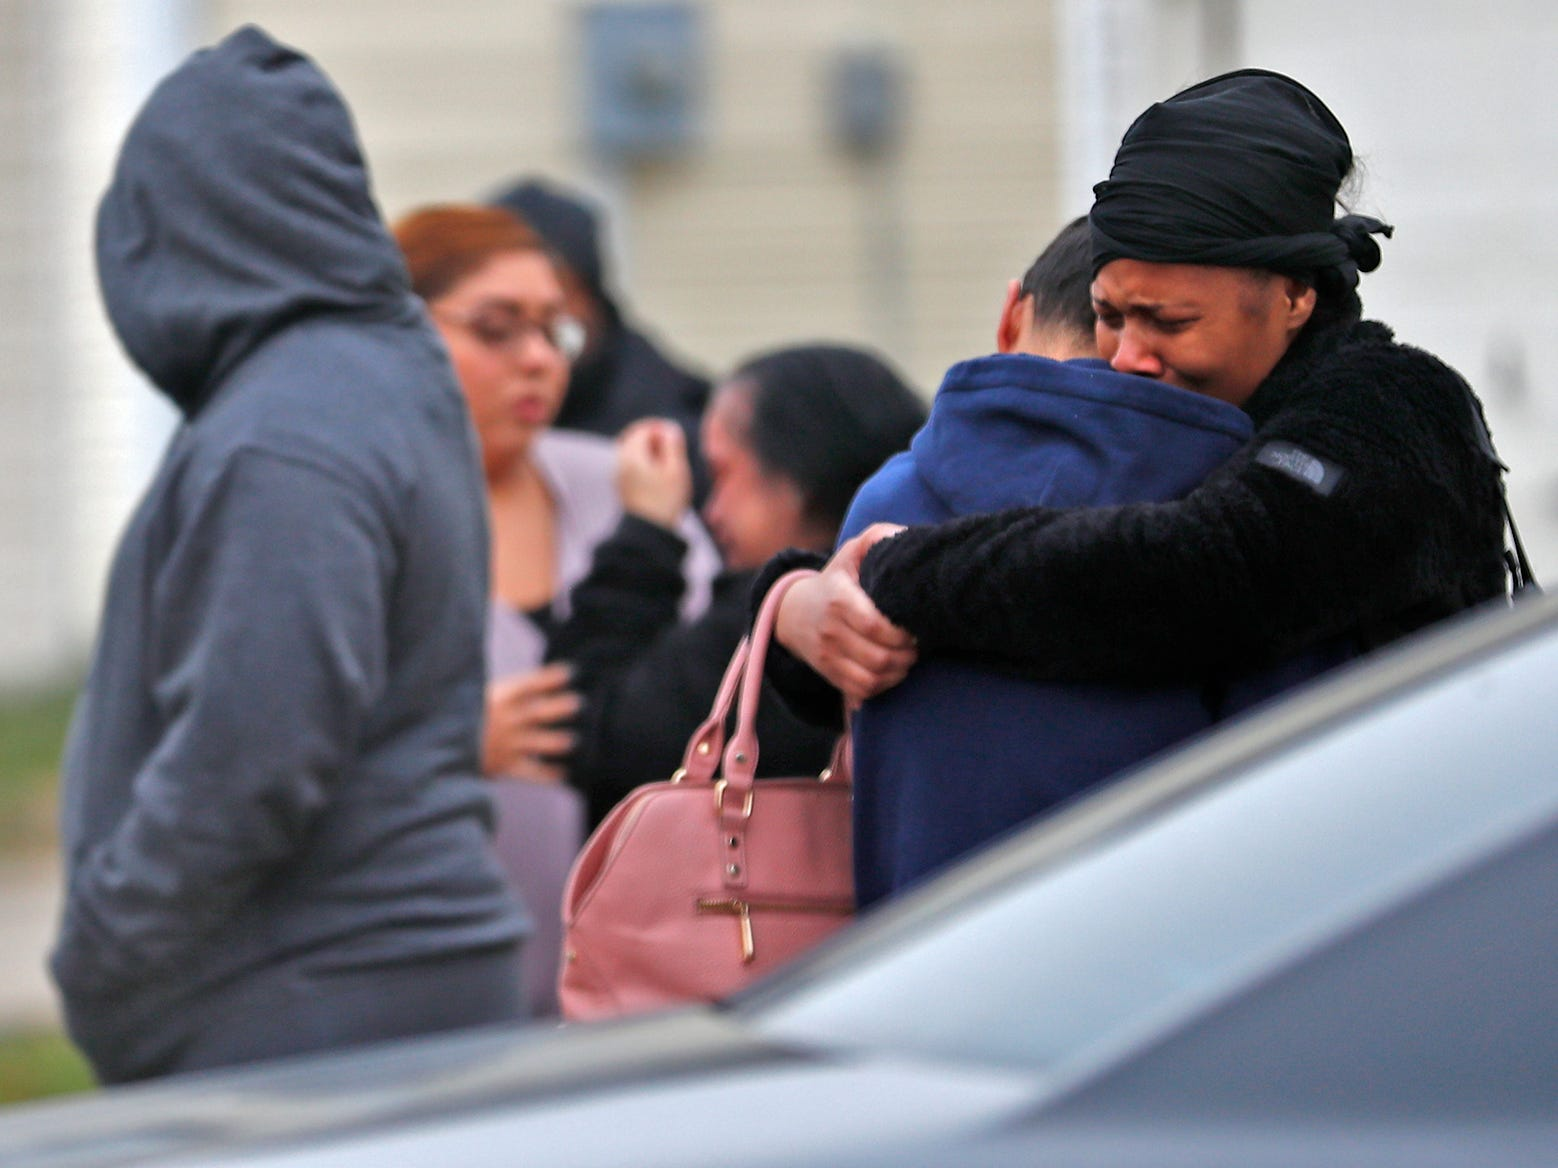 Distraught people comfort each other at the scene of a homicide in the 3800 block of Amaranth Court, Friday, Nov. 30, 2018.